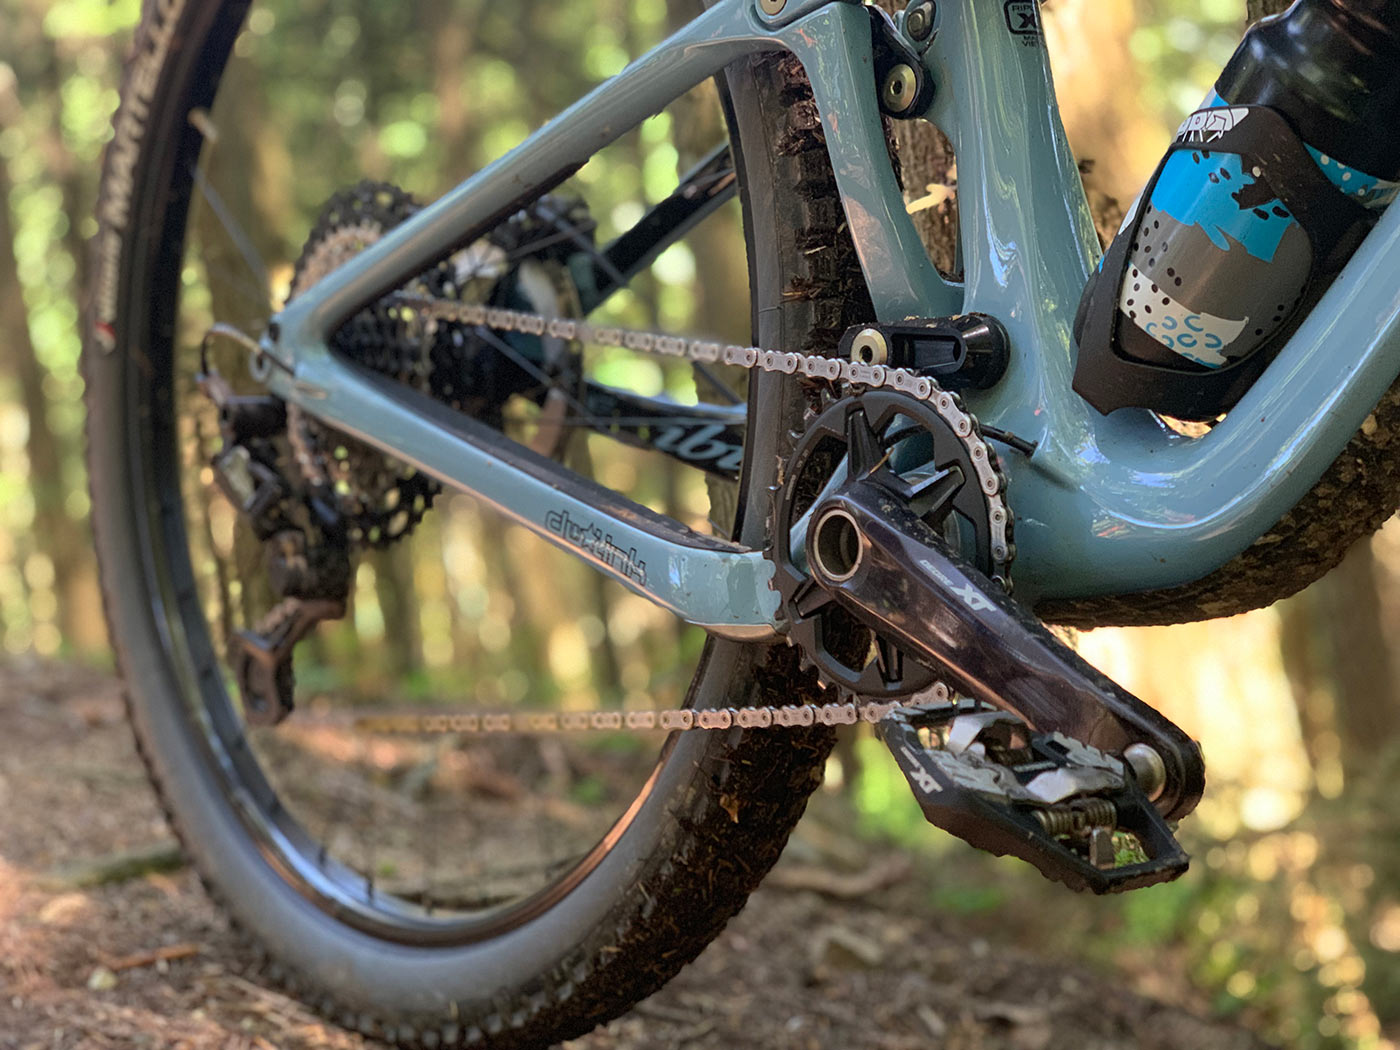 All-new Shimano XT M8100 and SLX M7100 unveiled - complete